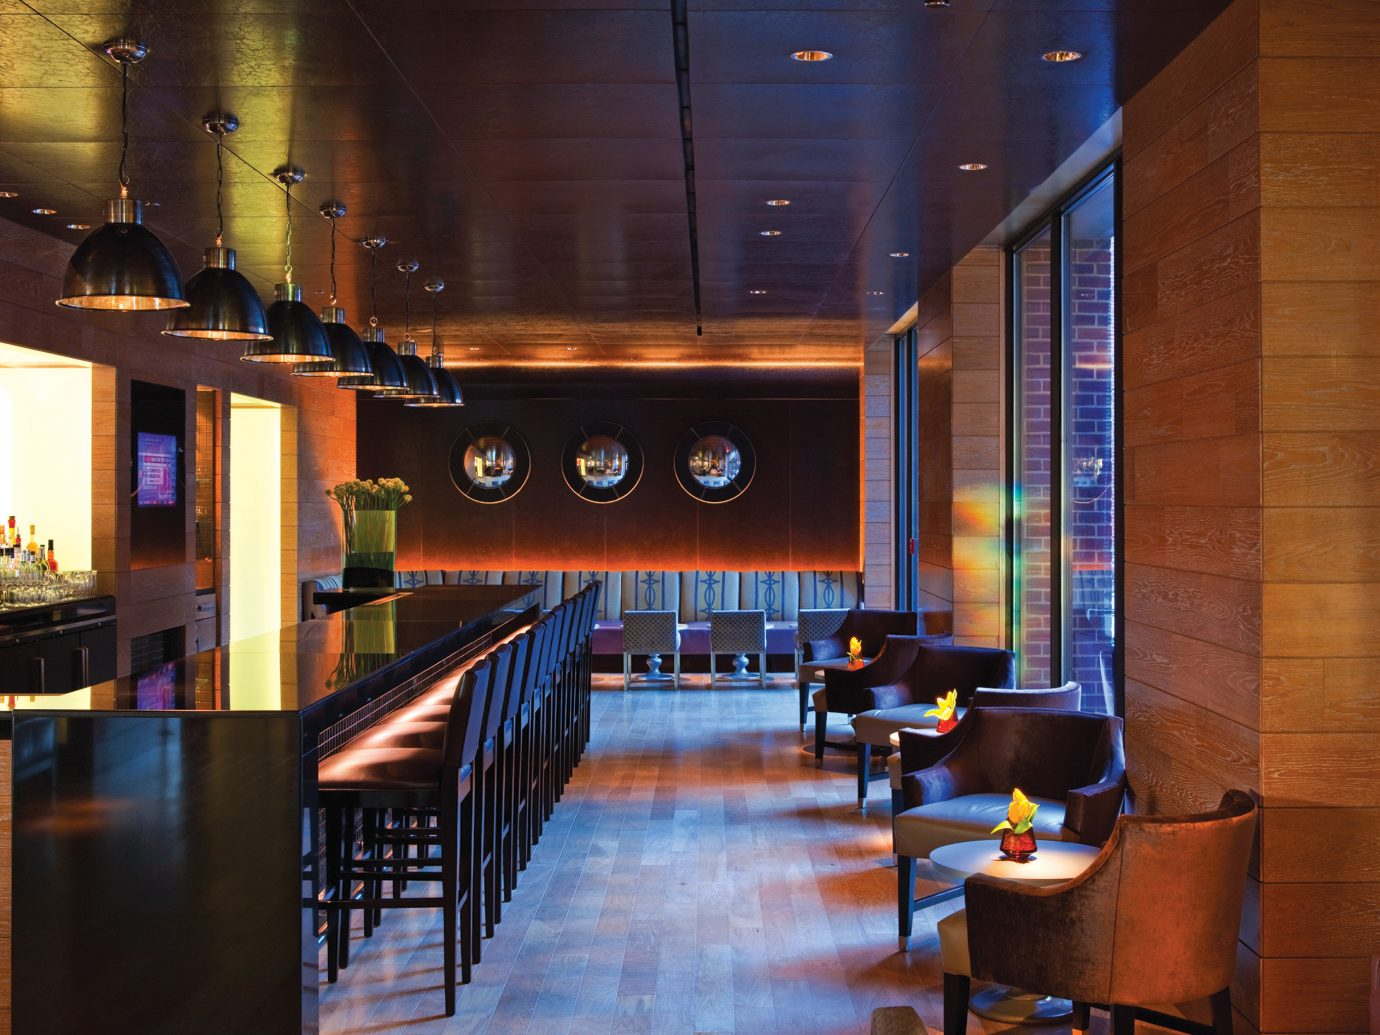 Bar Dining Drink Eat Elegant Hip Hotels Luxury Modern indoor floor table room Living ceiling interior design lighting Lobby restaurant furniture area